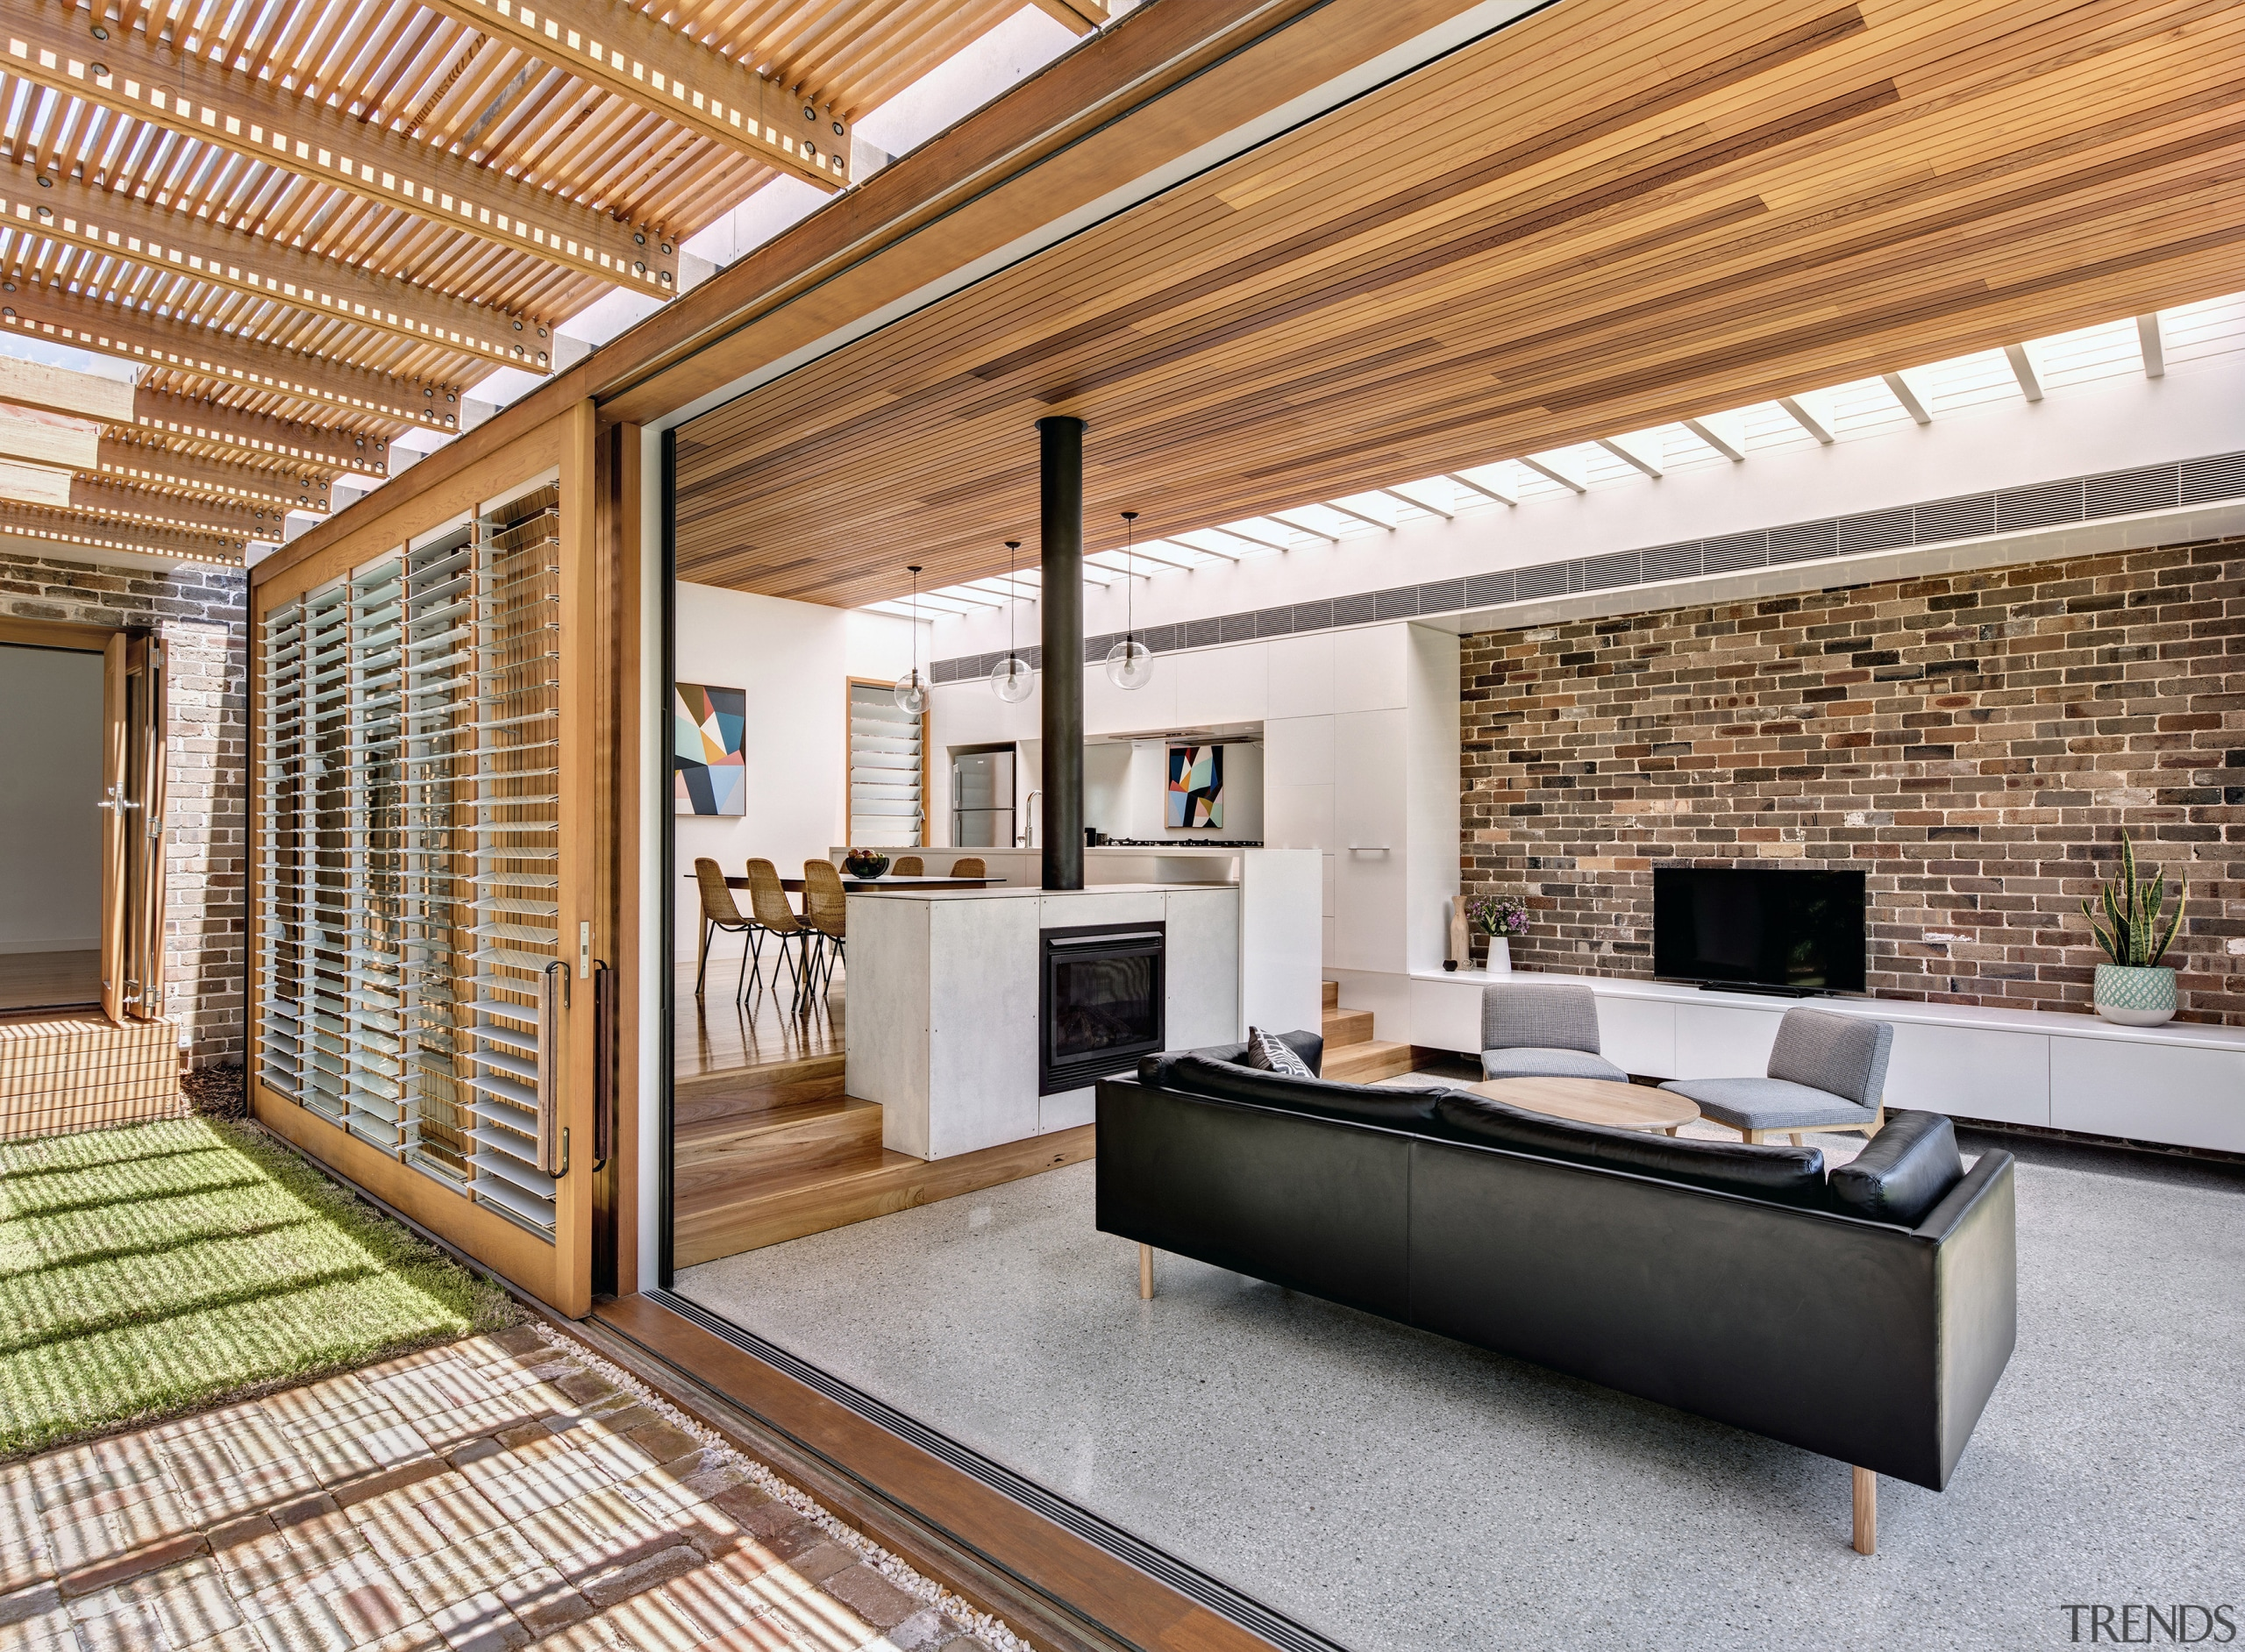 Sliding walls  on this extension, the indoors architecture, ceiling, floor, house, interior design, living room, real estate, wood